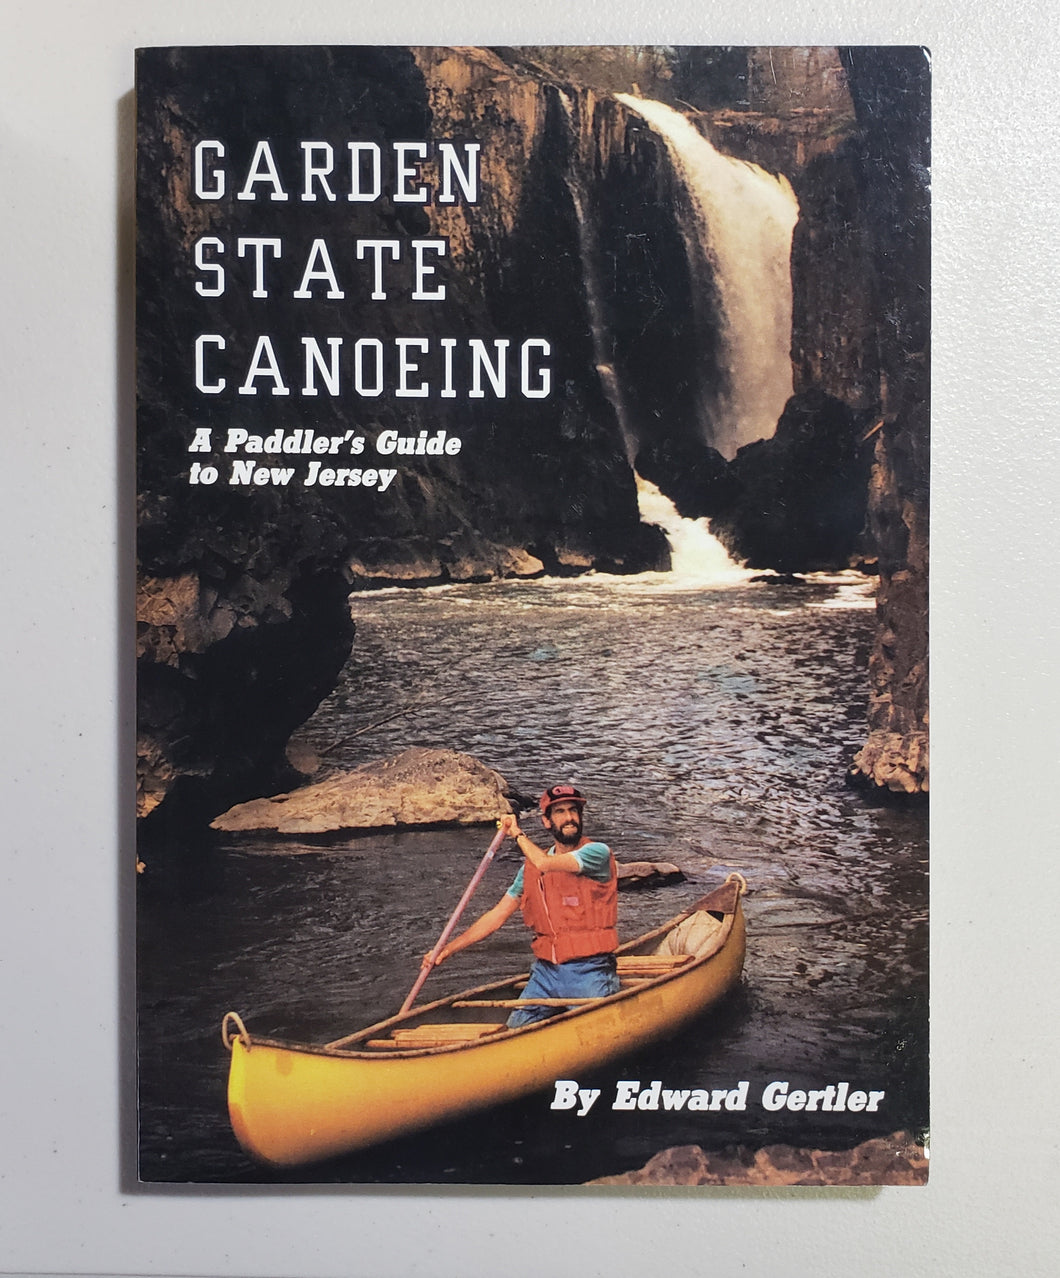 Garden State Canoeing: A Paddler's Guide to New Jersey